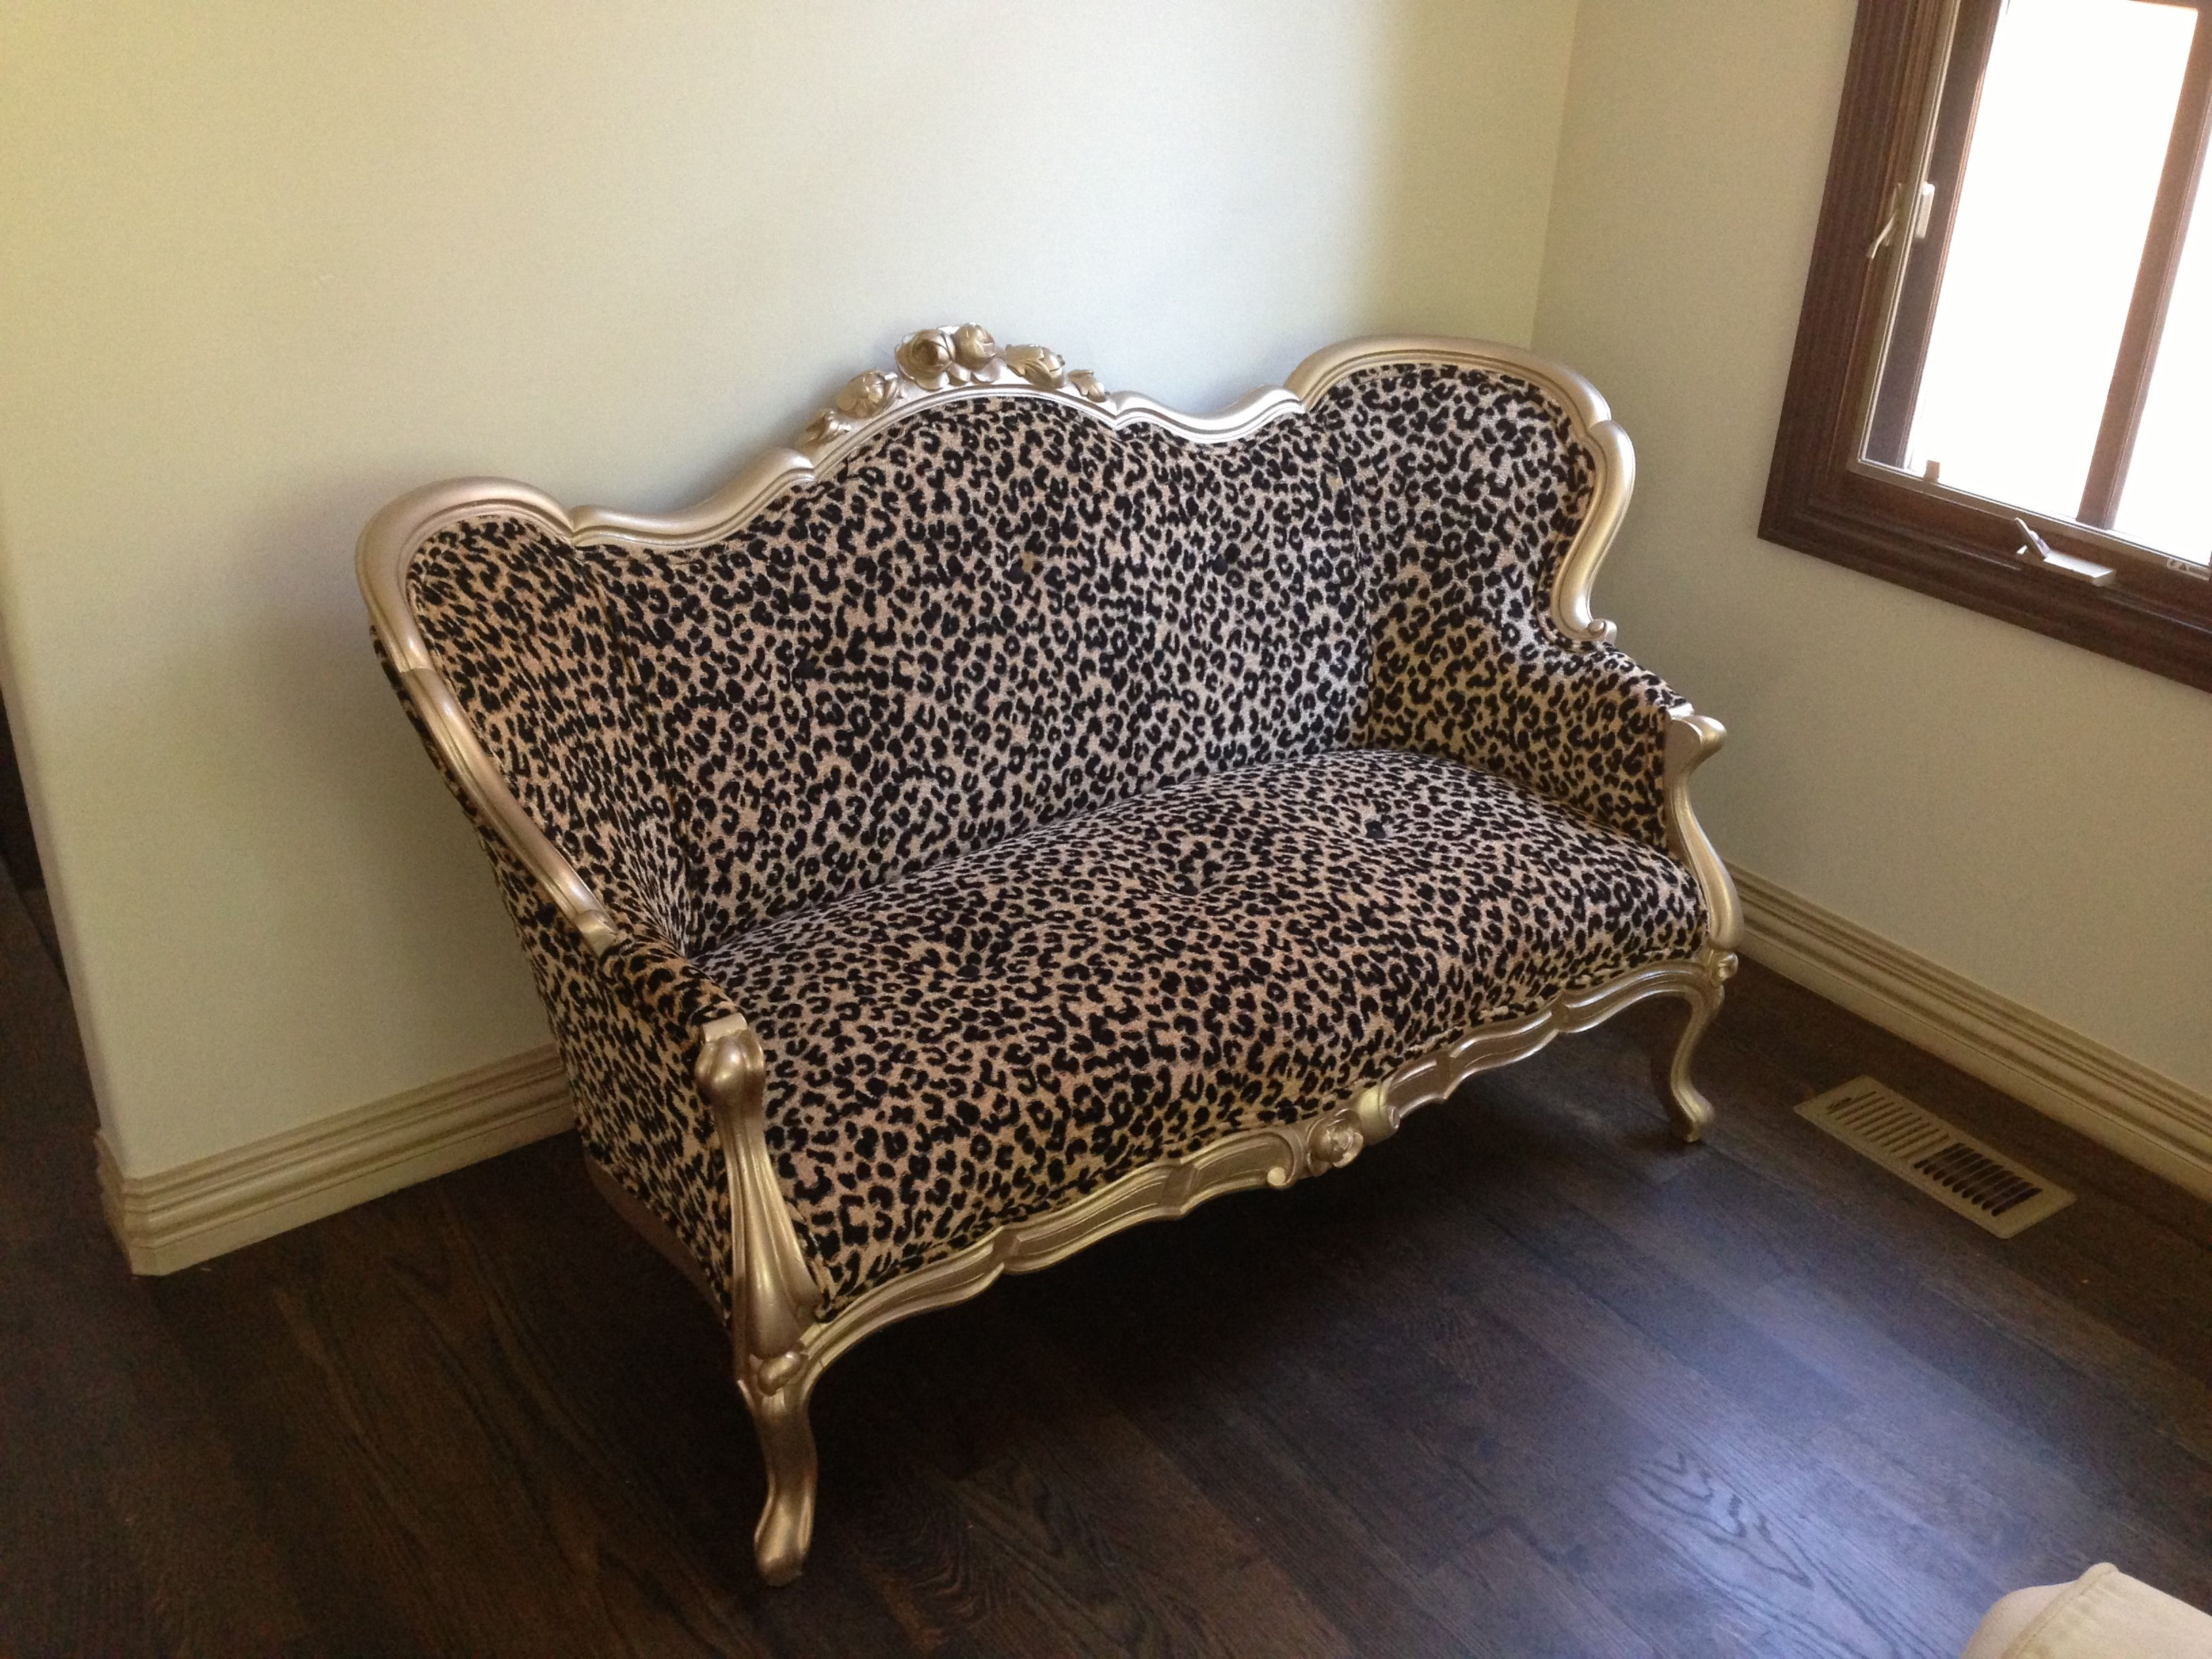 Leopard Victorian couch for my parlor